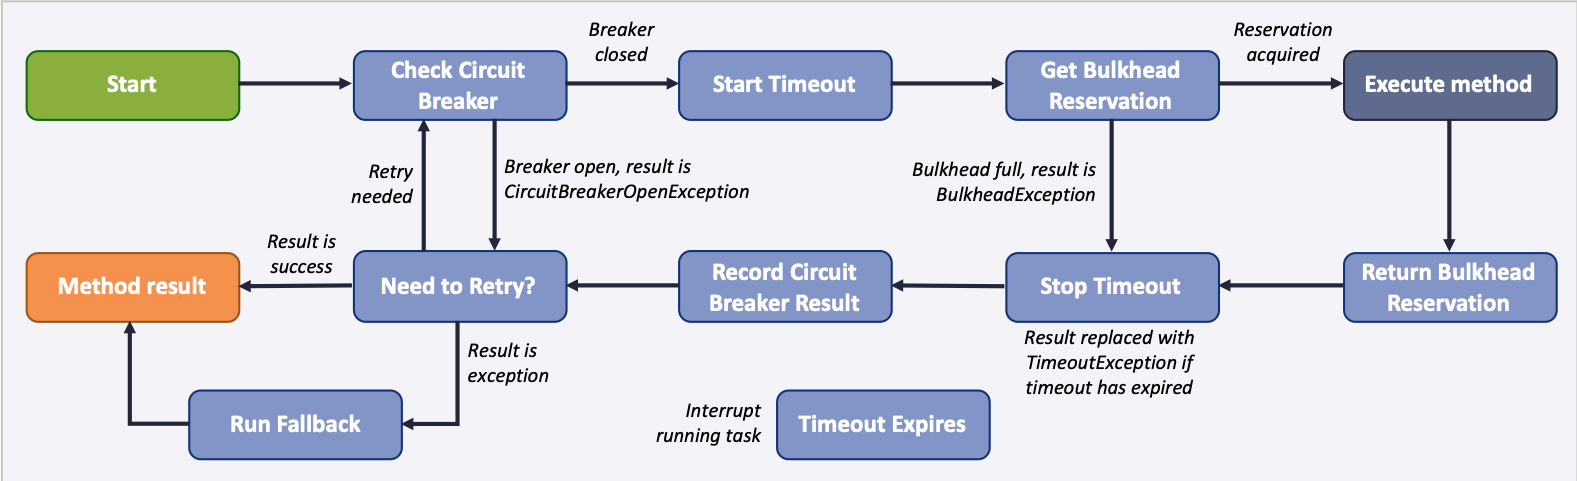 Fault Tolerance synchronous execution flow